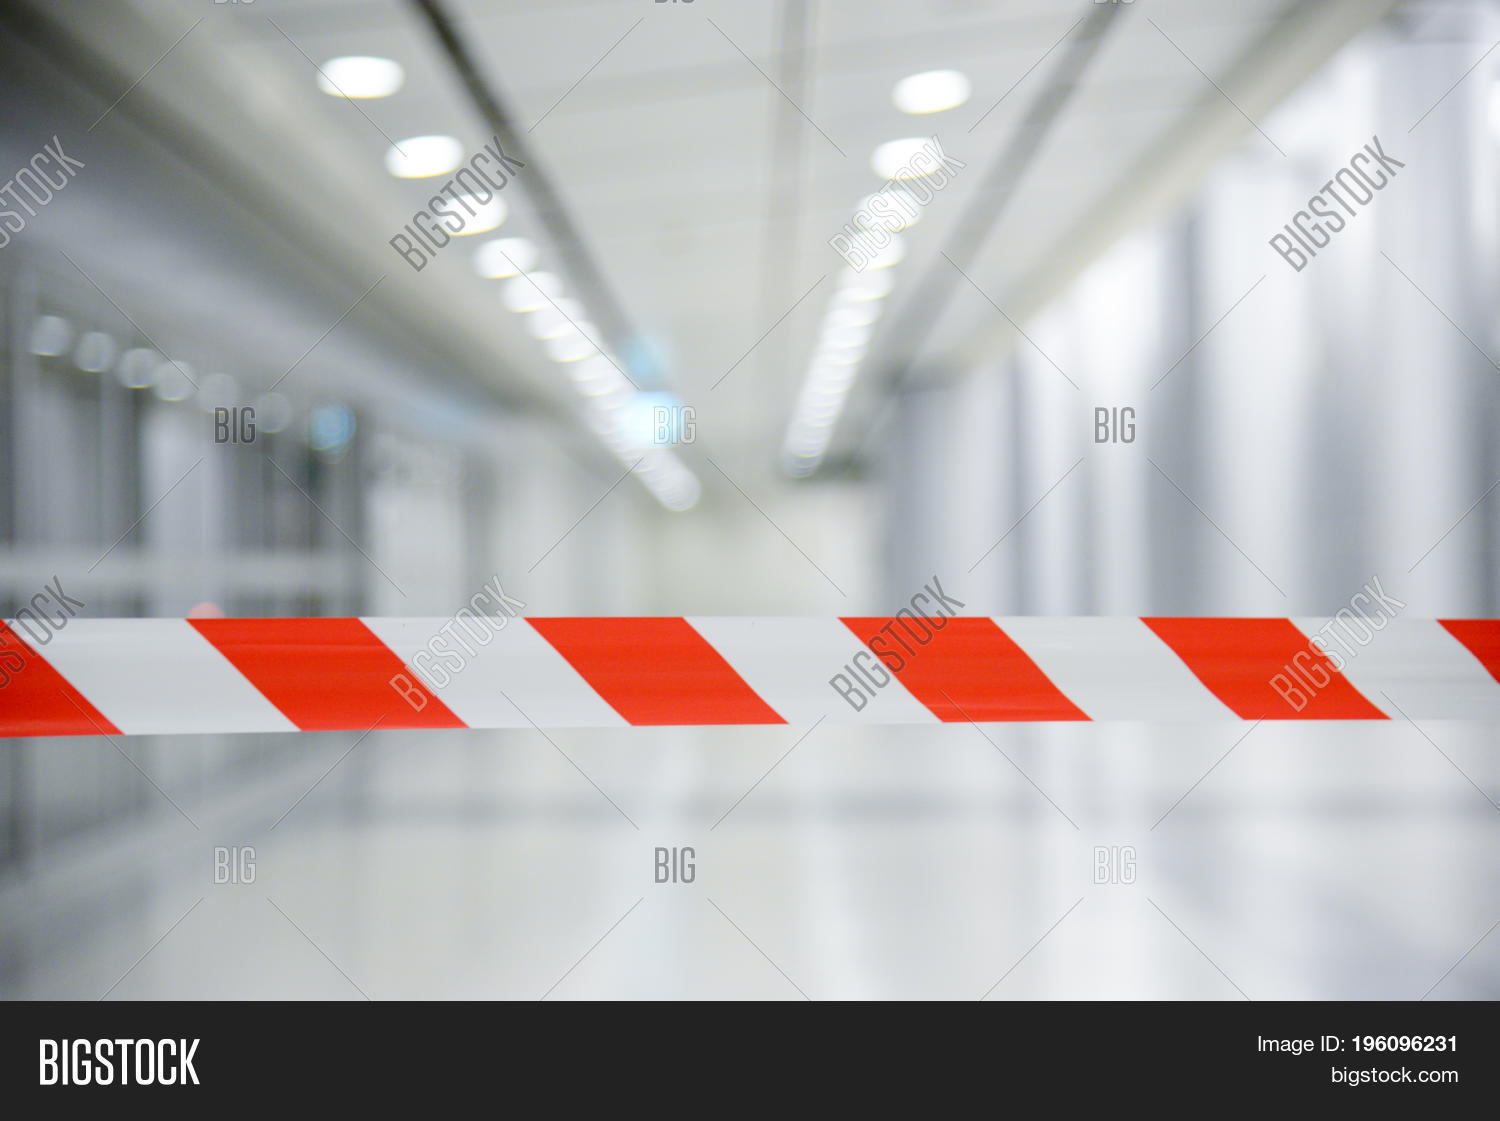 Red White Lines Image & Photo (Free Trial) | Bigstock